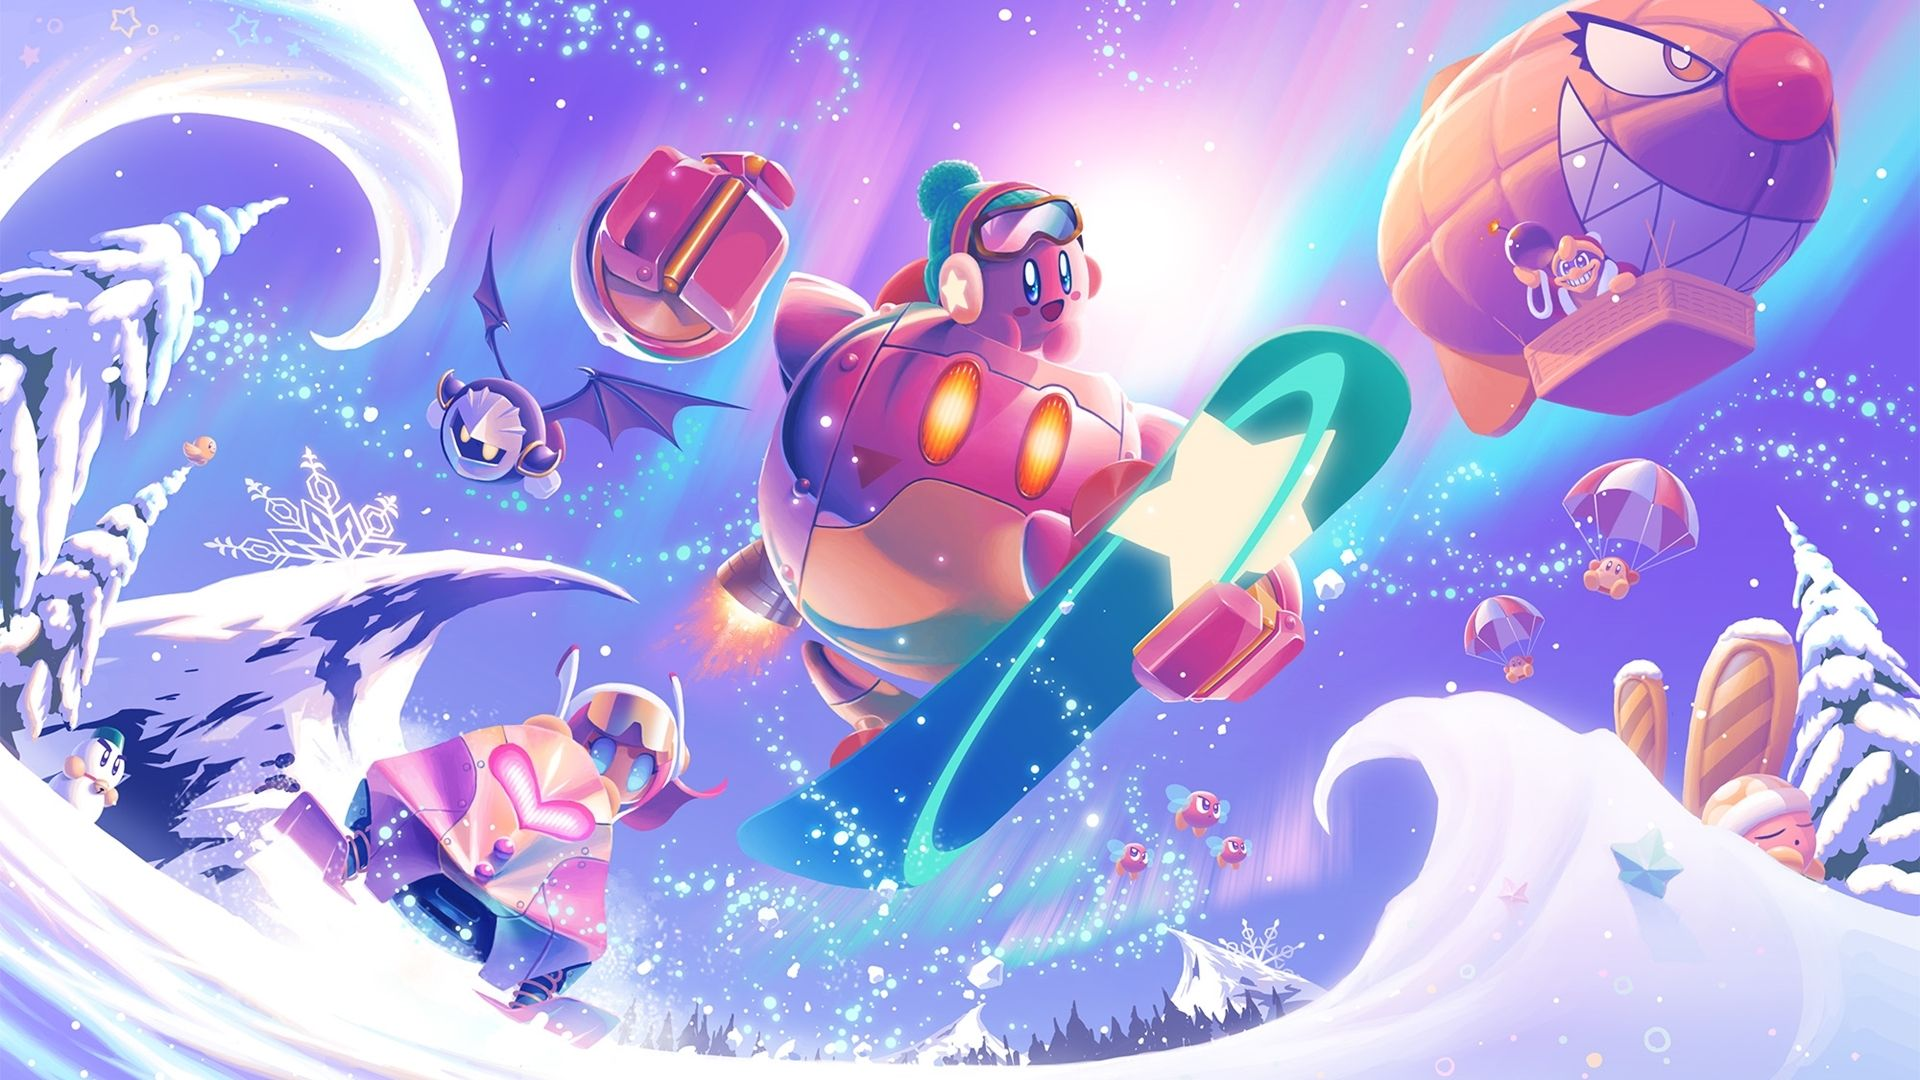 Kirby Video Game Kirby Planet Robobot Wallpaper Kirby Art